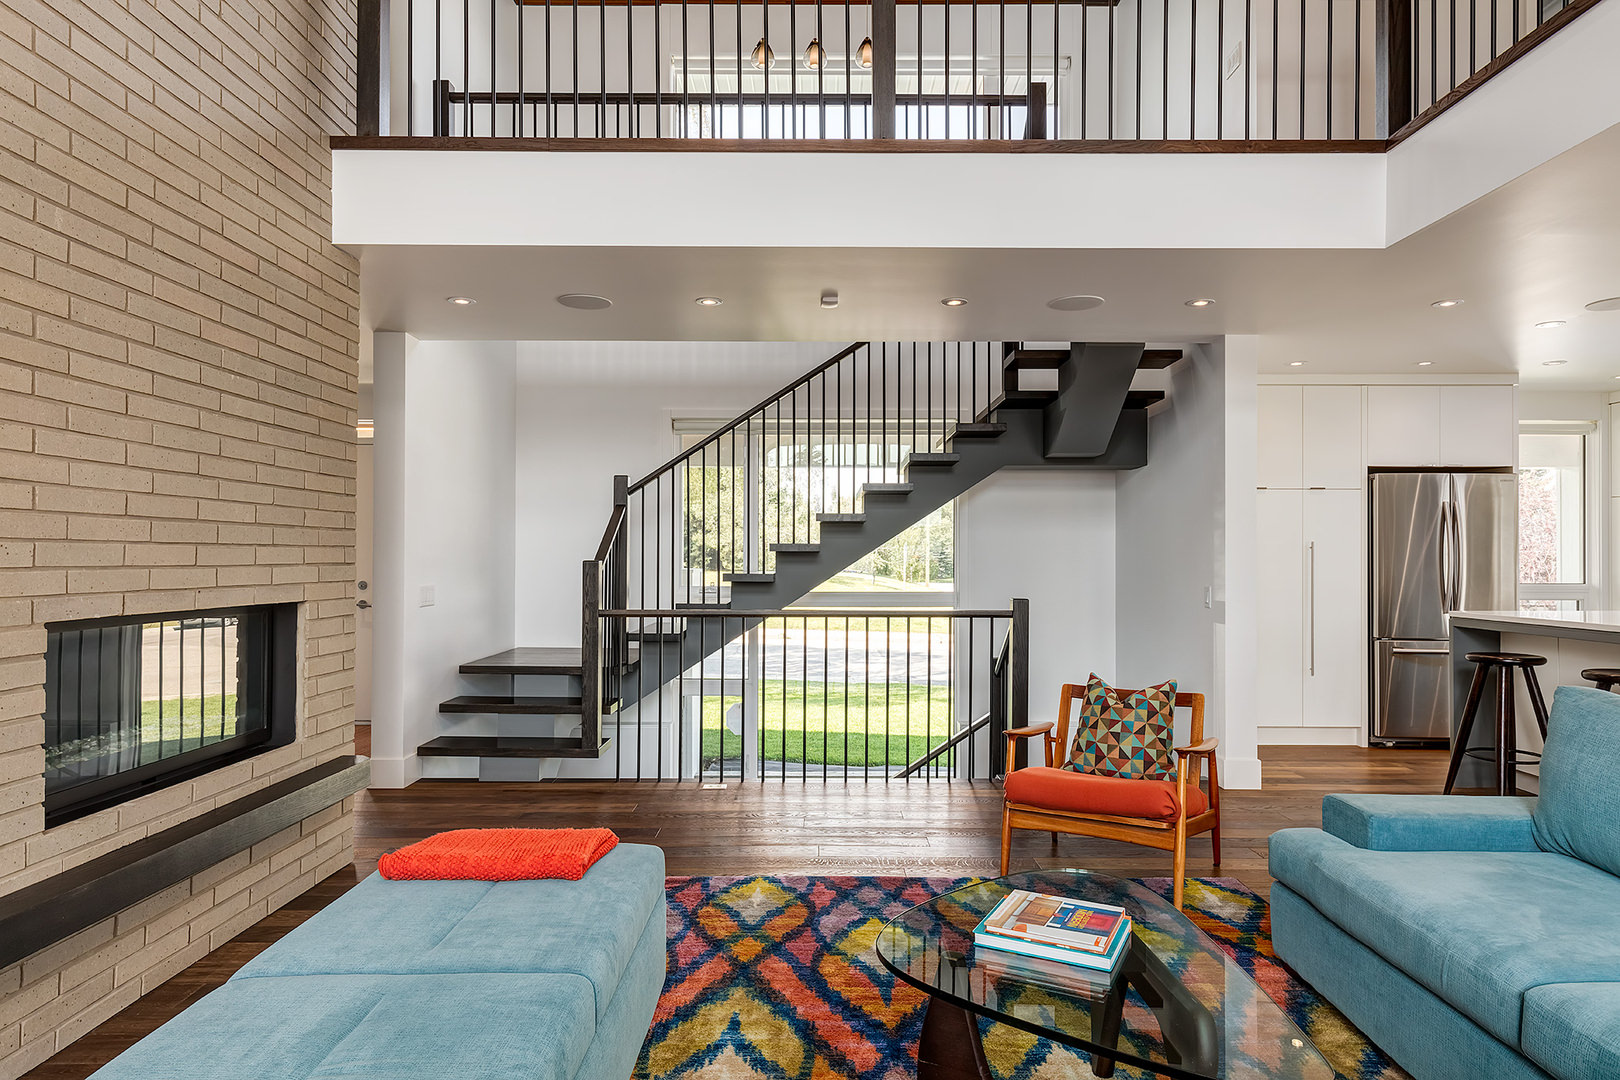 Right next to the living area is a staircase that leads to the upper and lower levels. Not to mention the brick stone wall with a fire place, which extends from the main floor up to the second level.